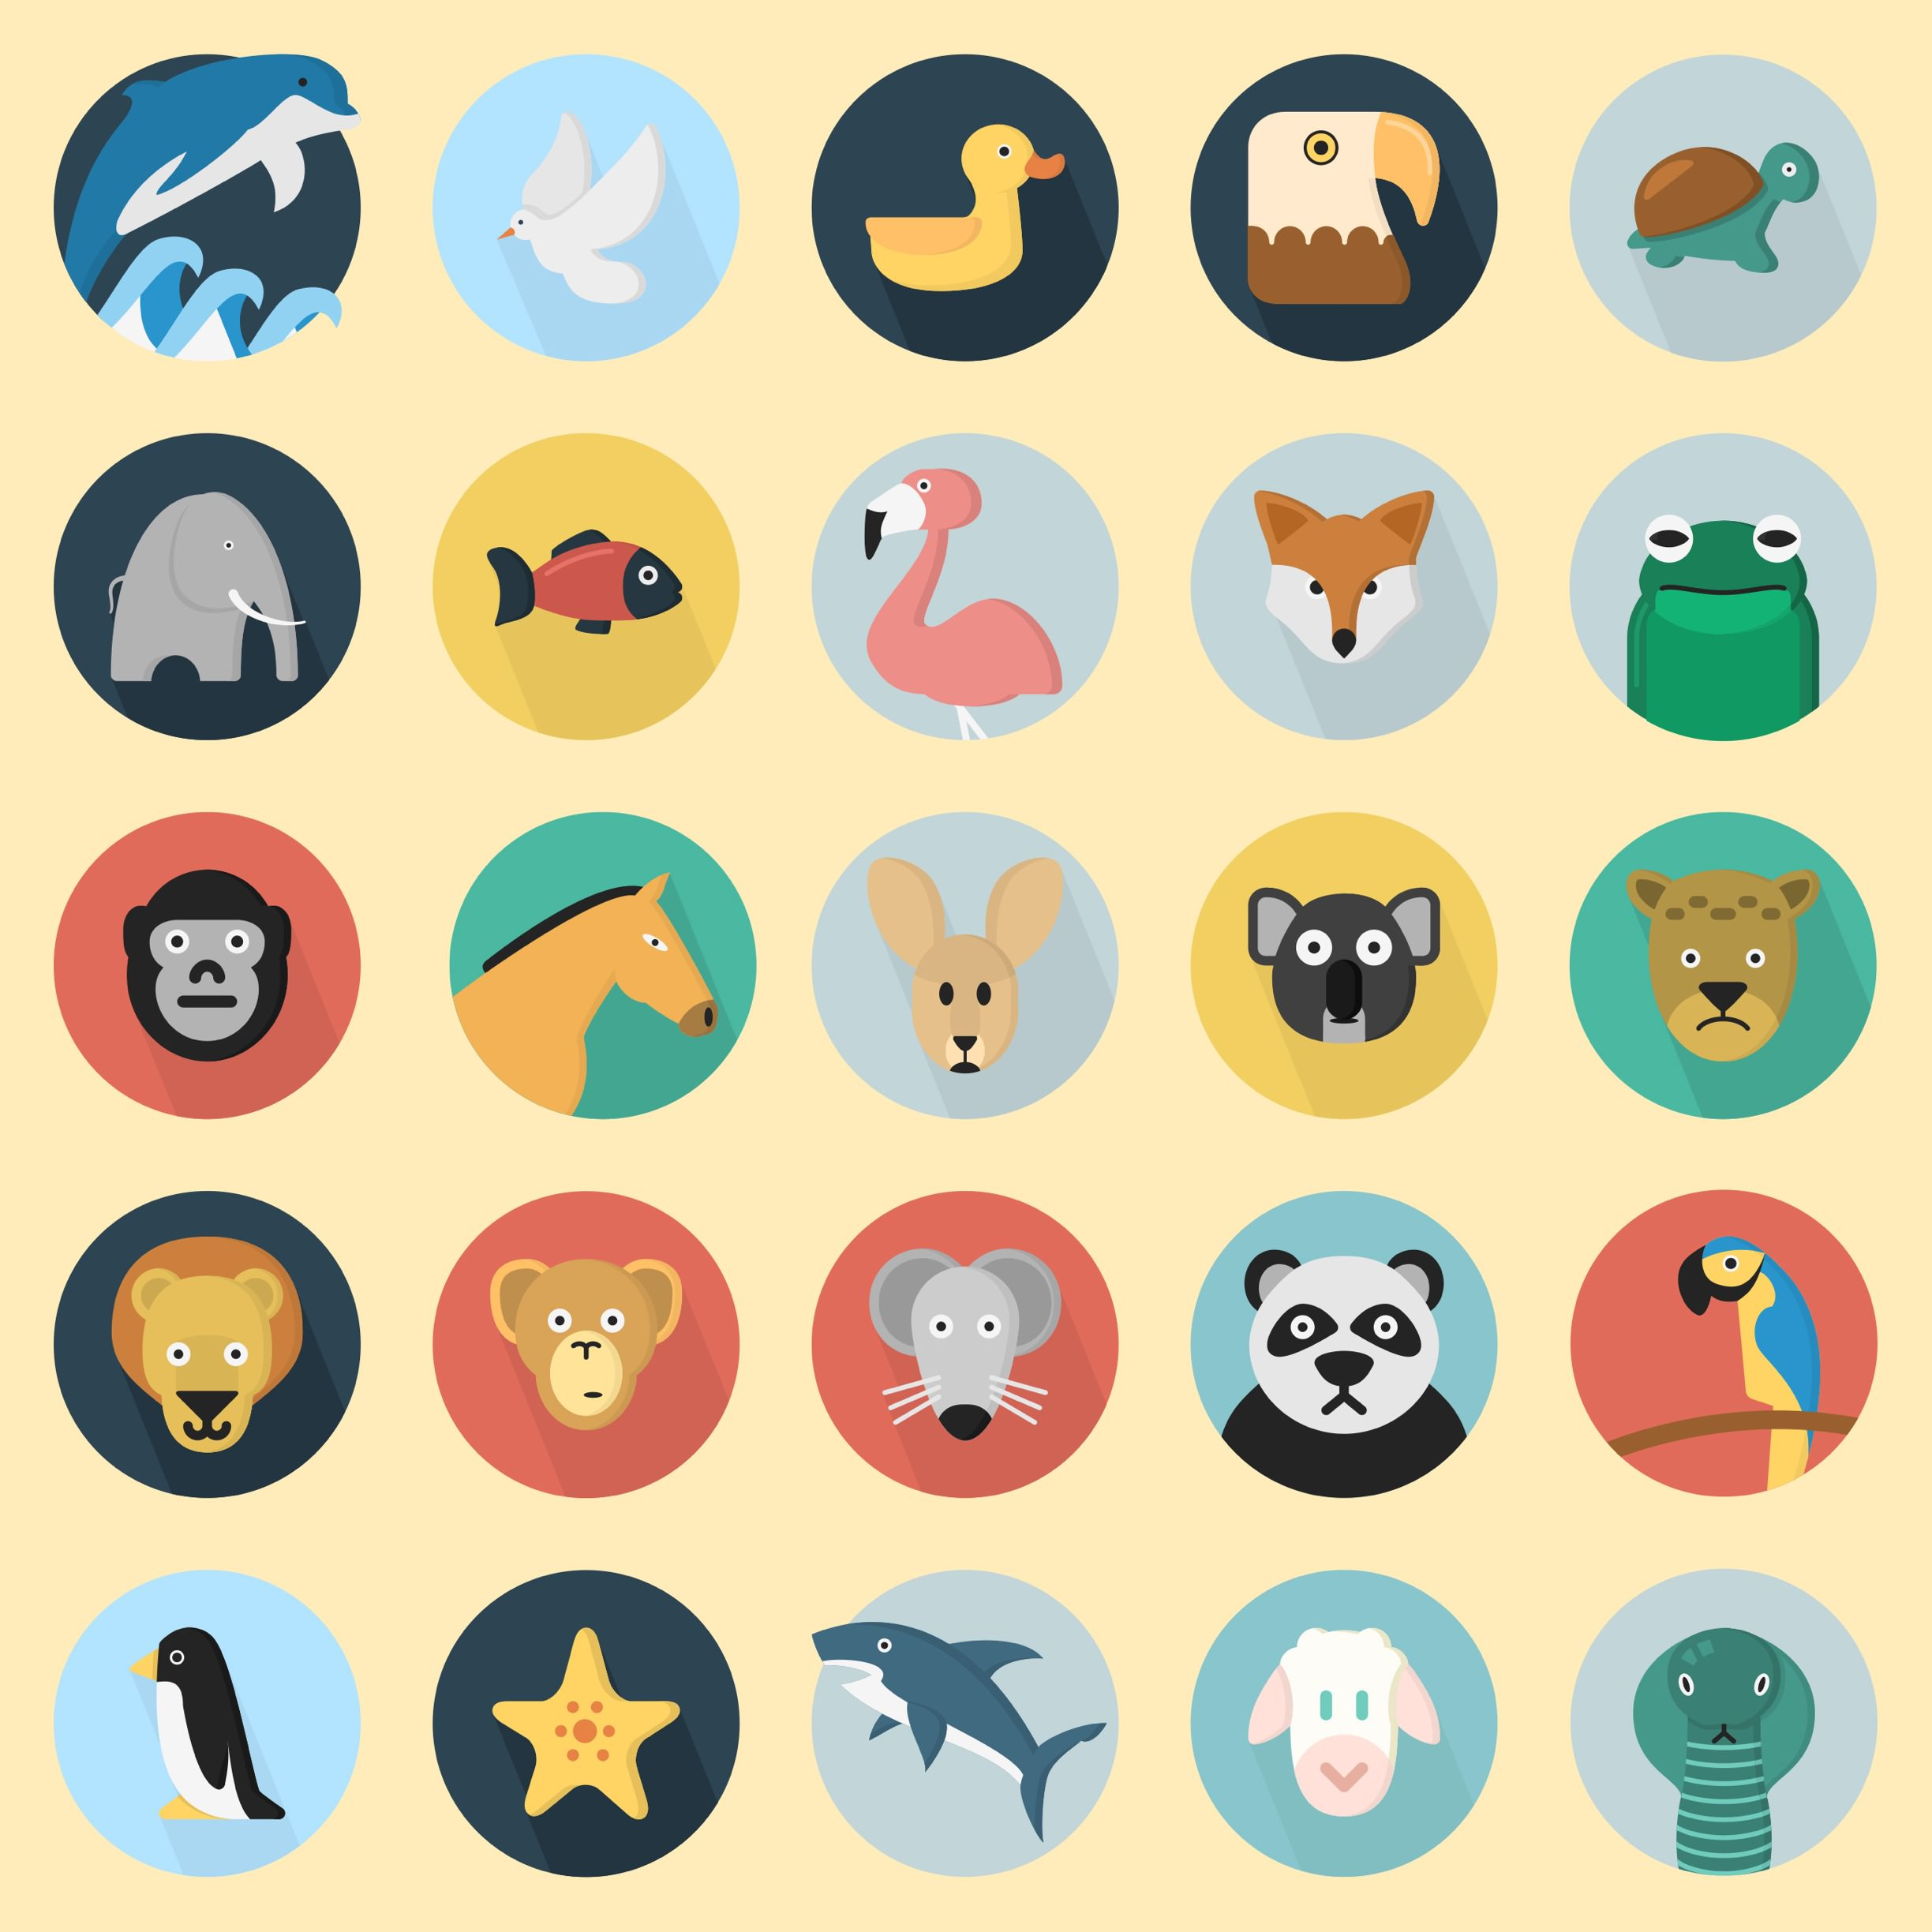 Free Iphone Wallpapers Cute 動物 イラスト